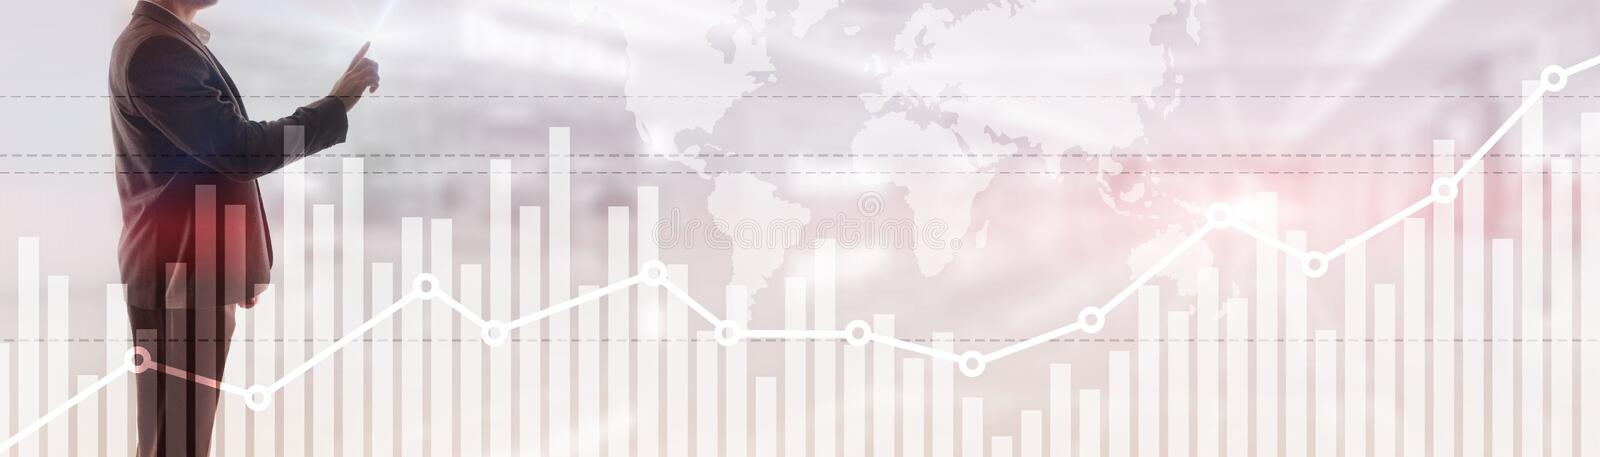 Double exposure global world map on business financial stock market trading background. Double exposure global world map on business financial stock market royalty free stock photo